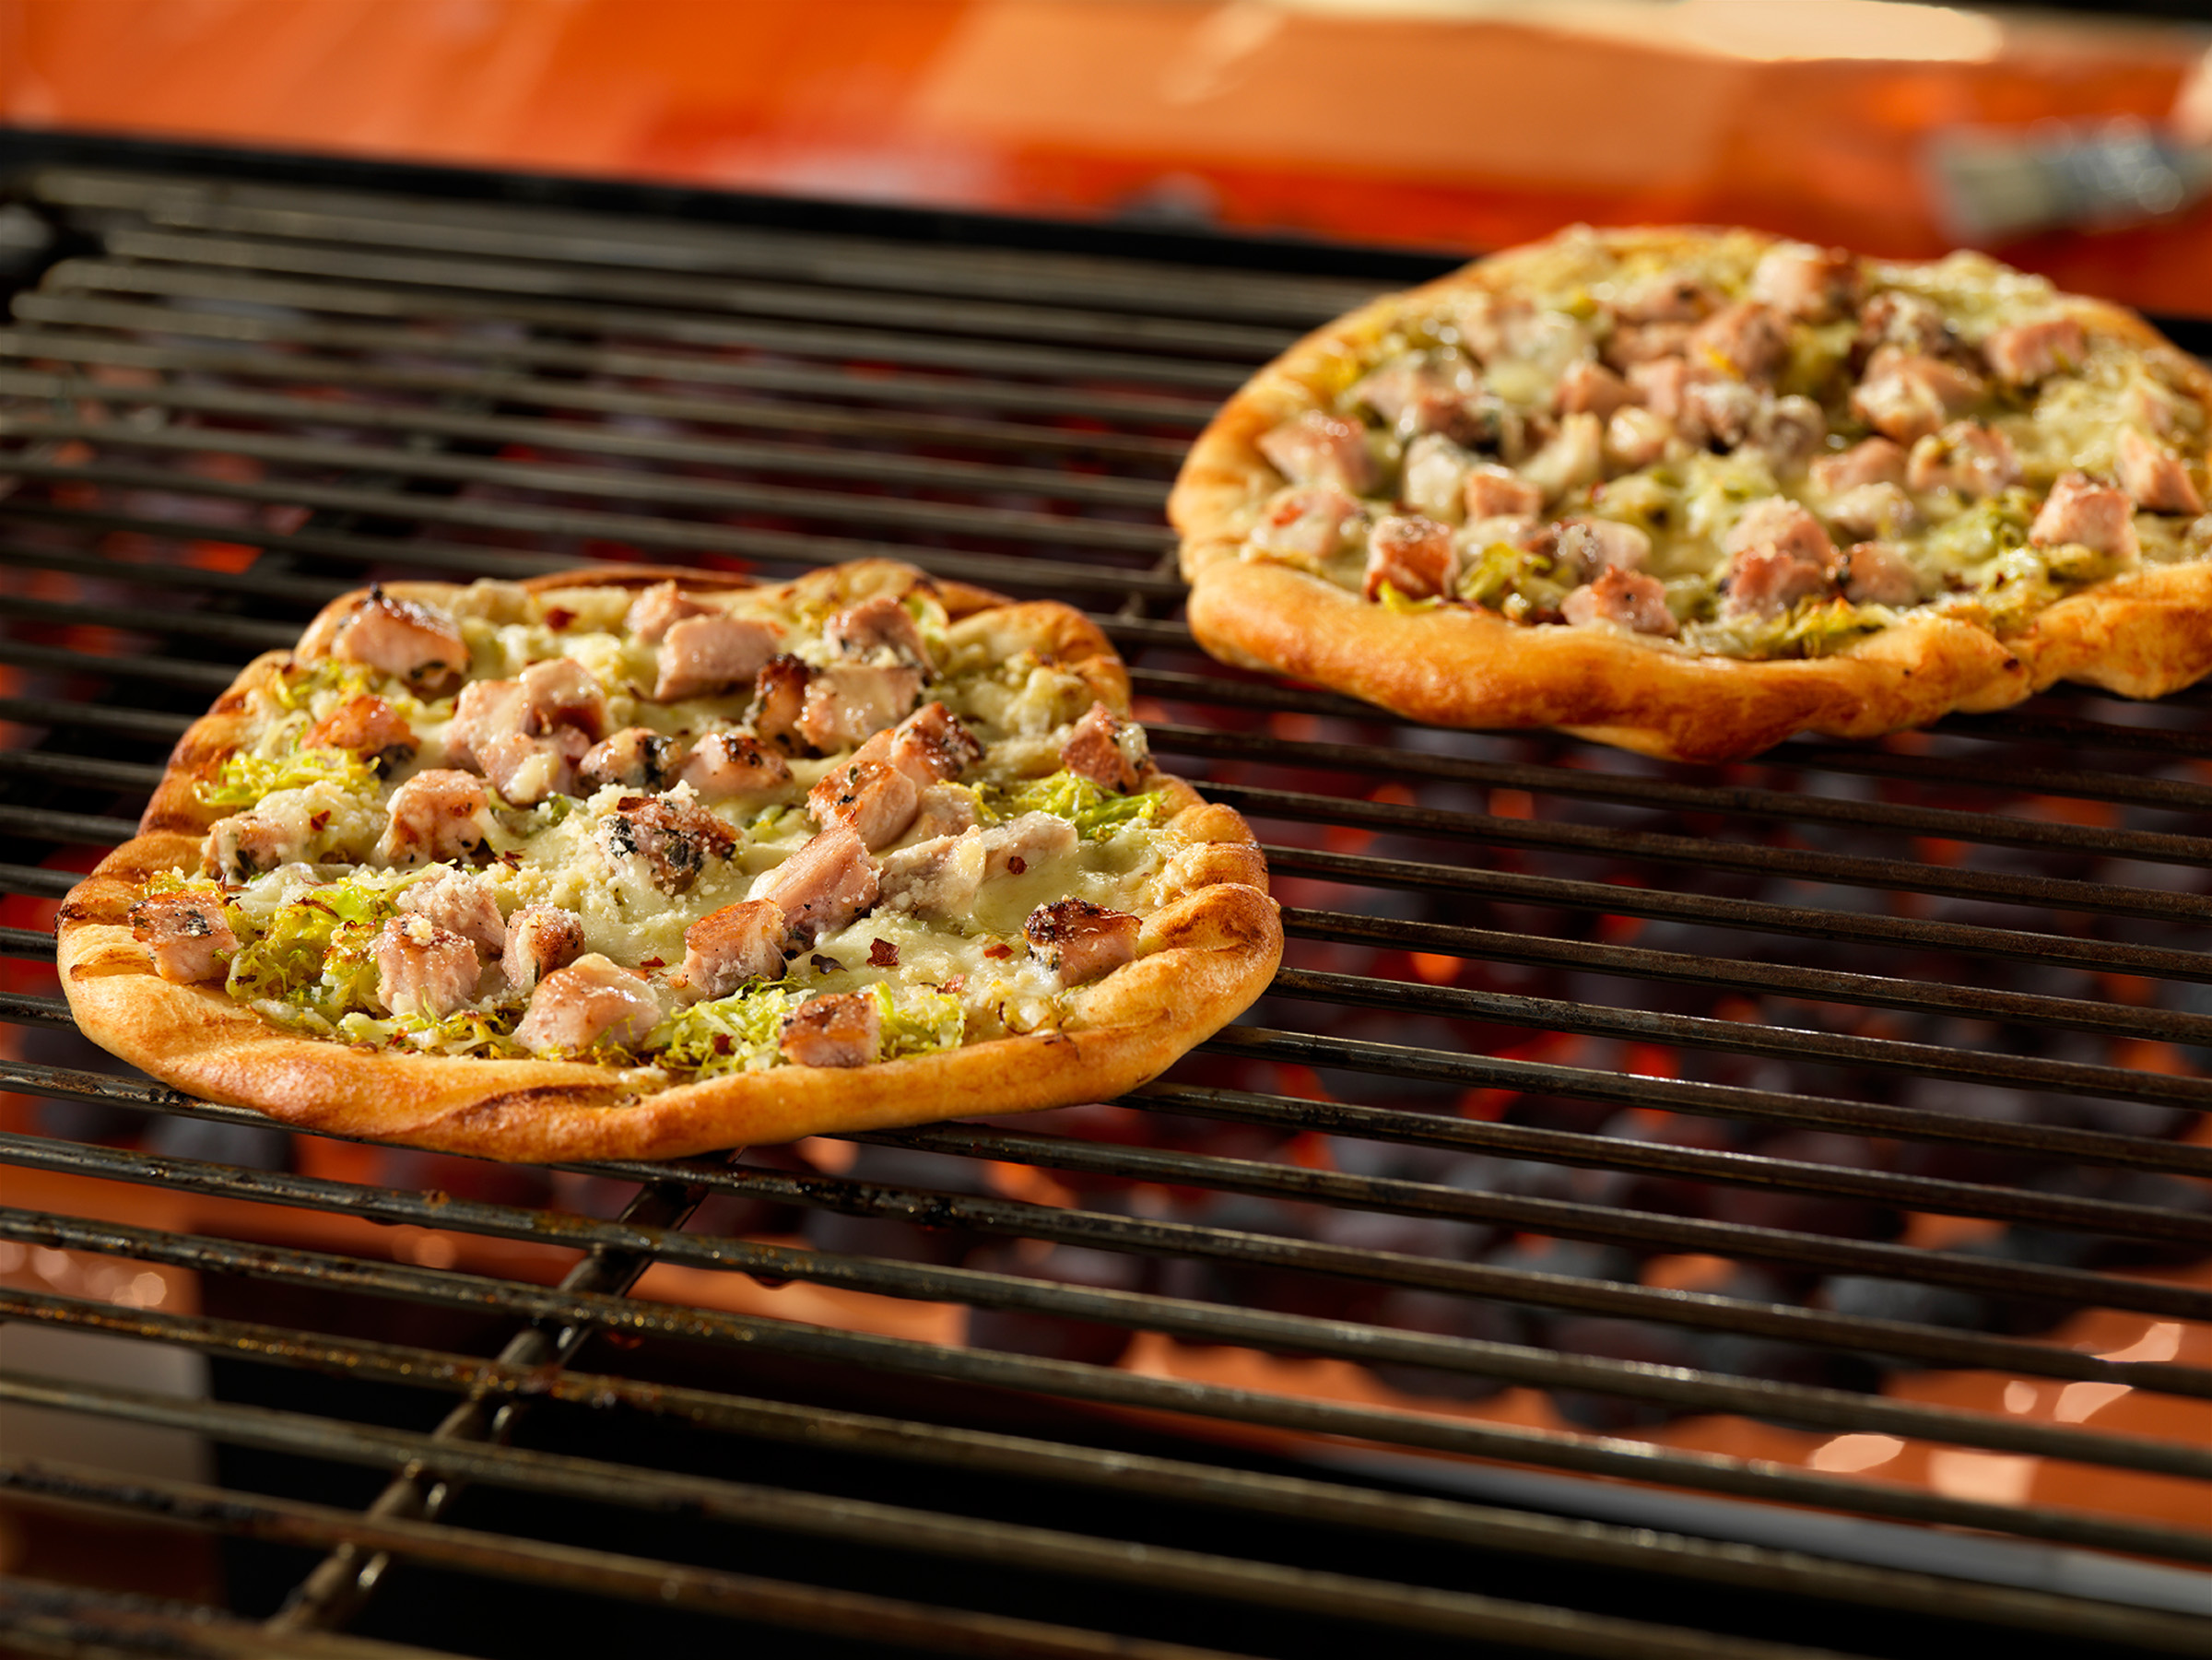 Grilled_Pizza_Herbed_Pork_Brussels_Sprouts_HR.jpg